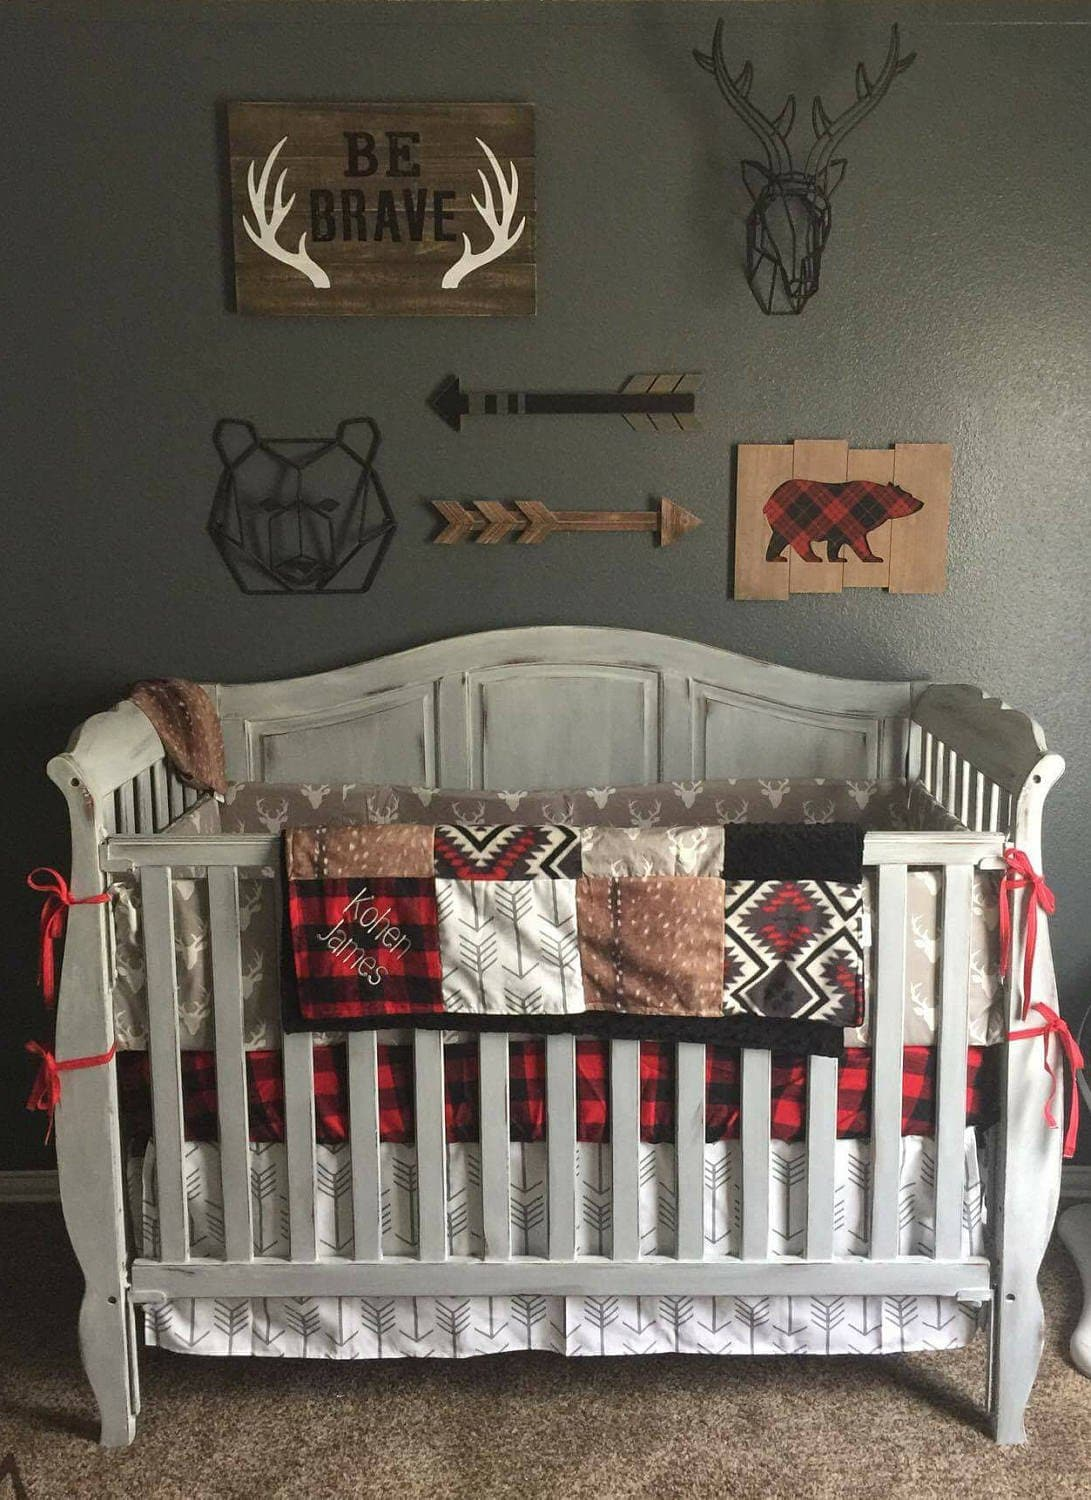 Crib Bedding Baby Boy Rooms: 2 Day Ship Baby Boy Crib Bedding- Light Gray Buck, Deer